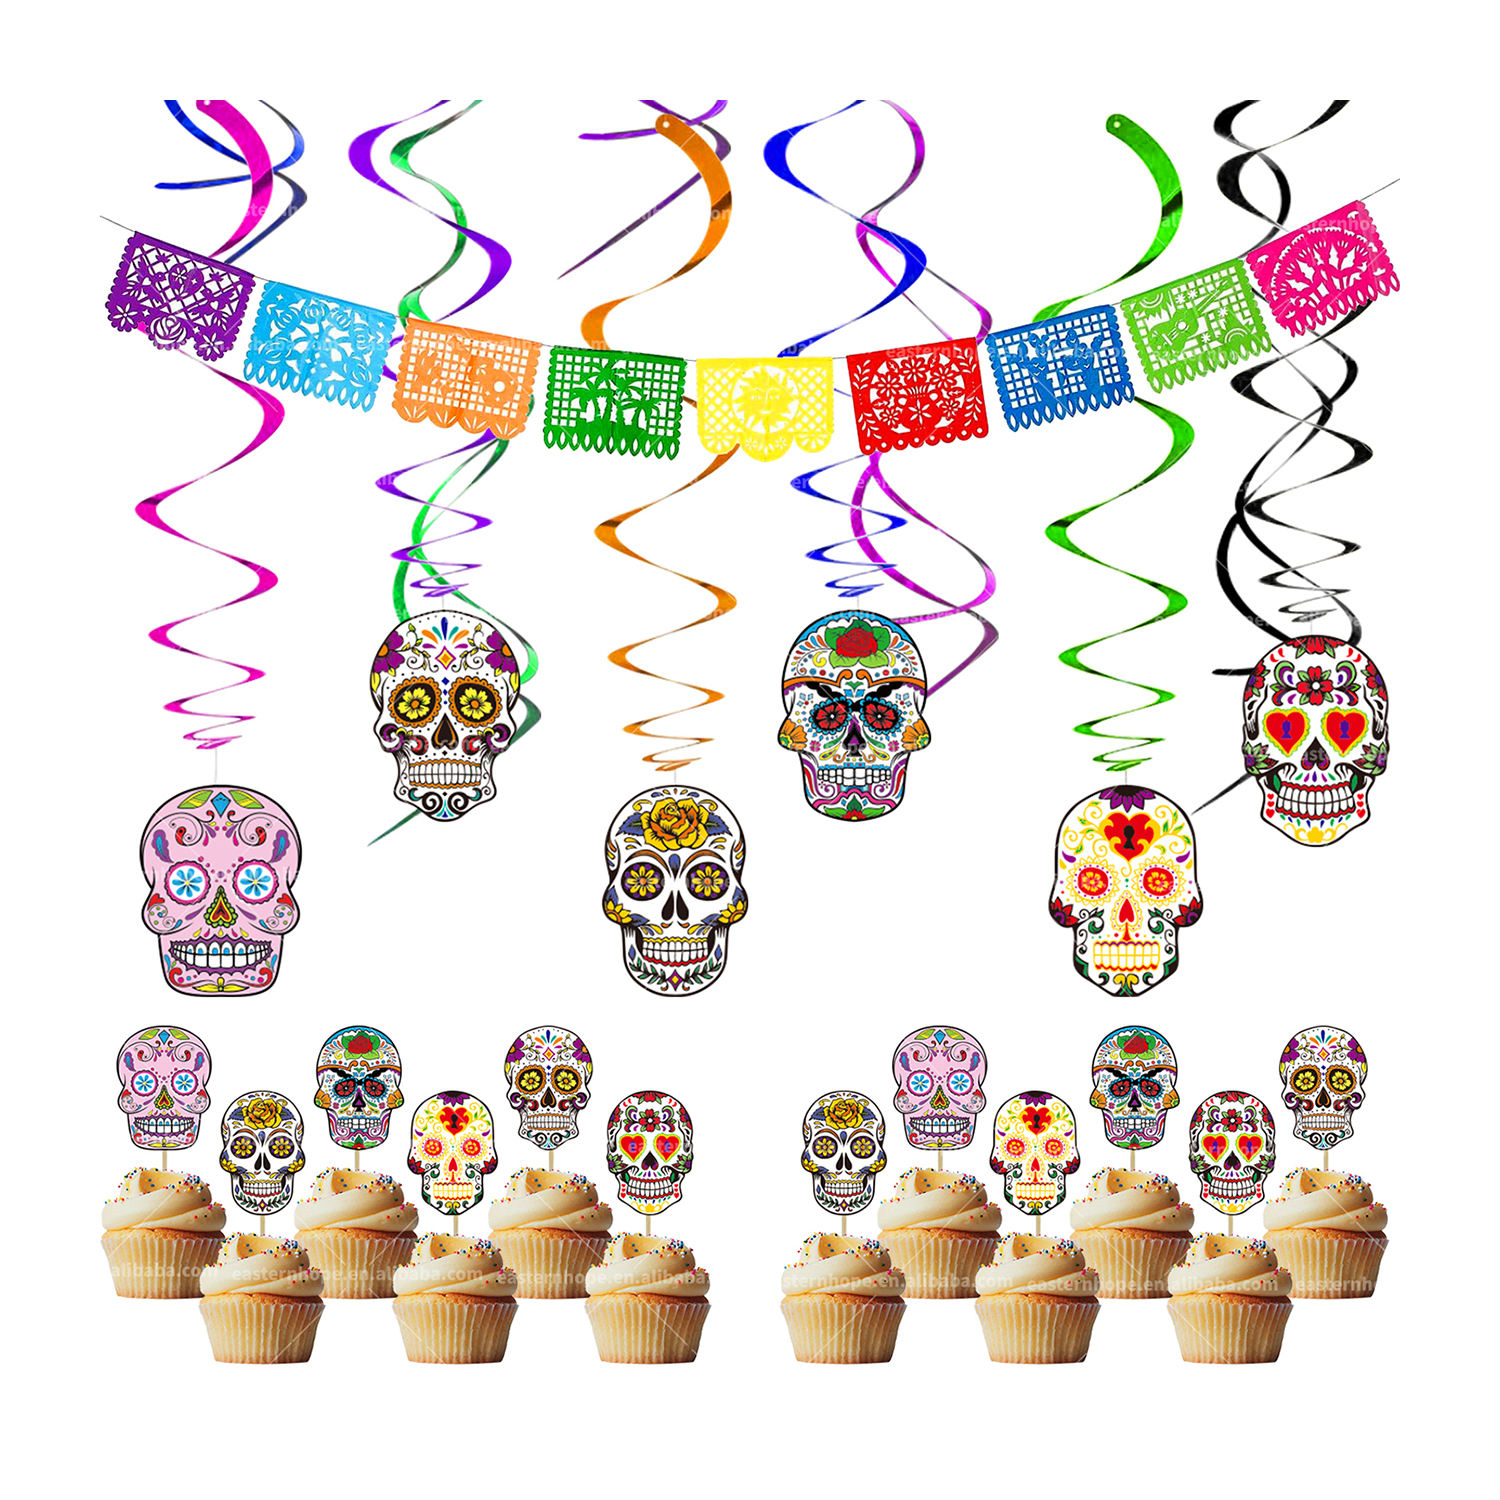 Fiesta Hanging Swirl Decorations Mexican Party Foil Hanging Day of the Dead Theme Decorations